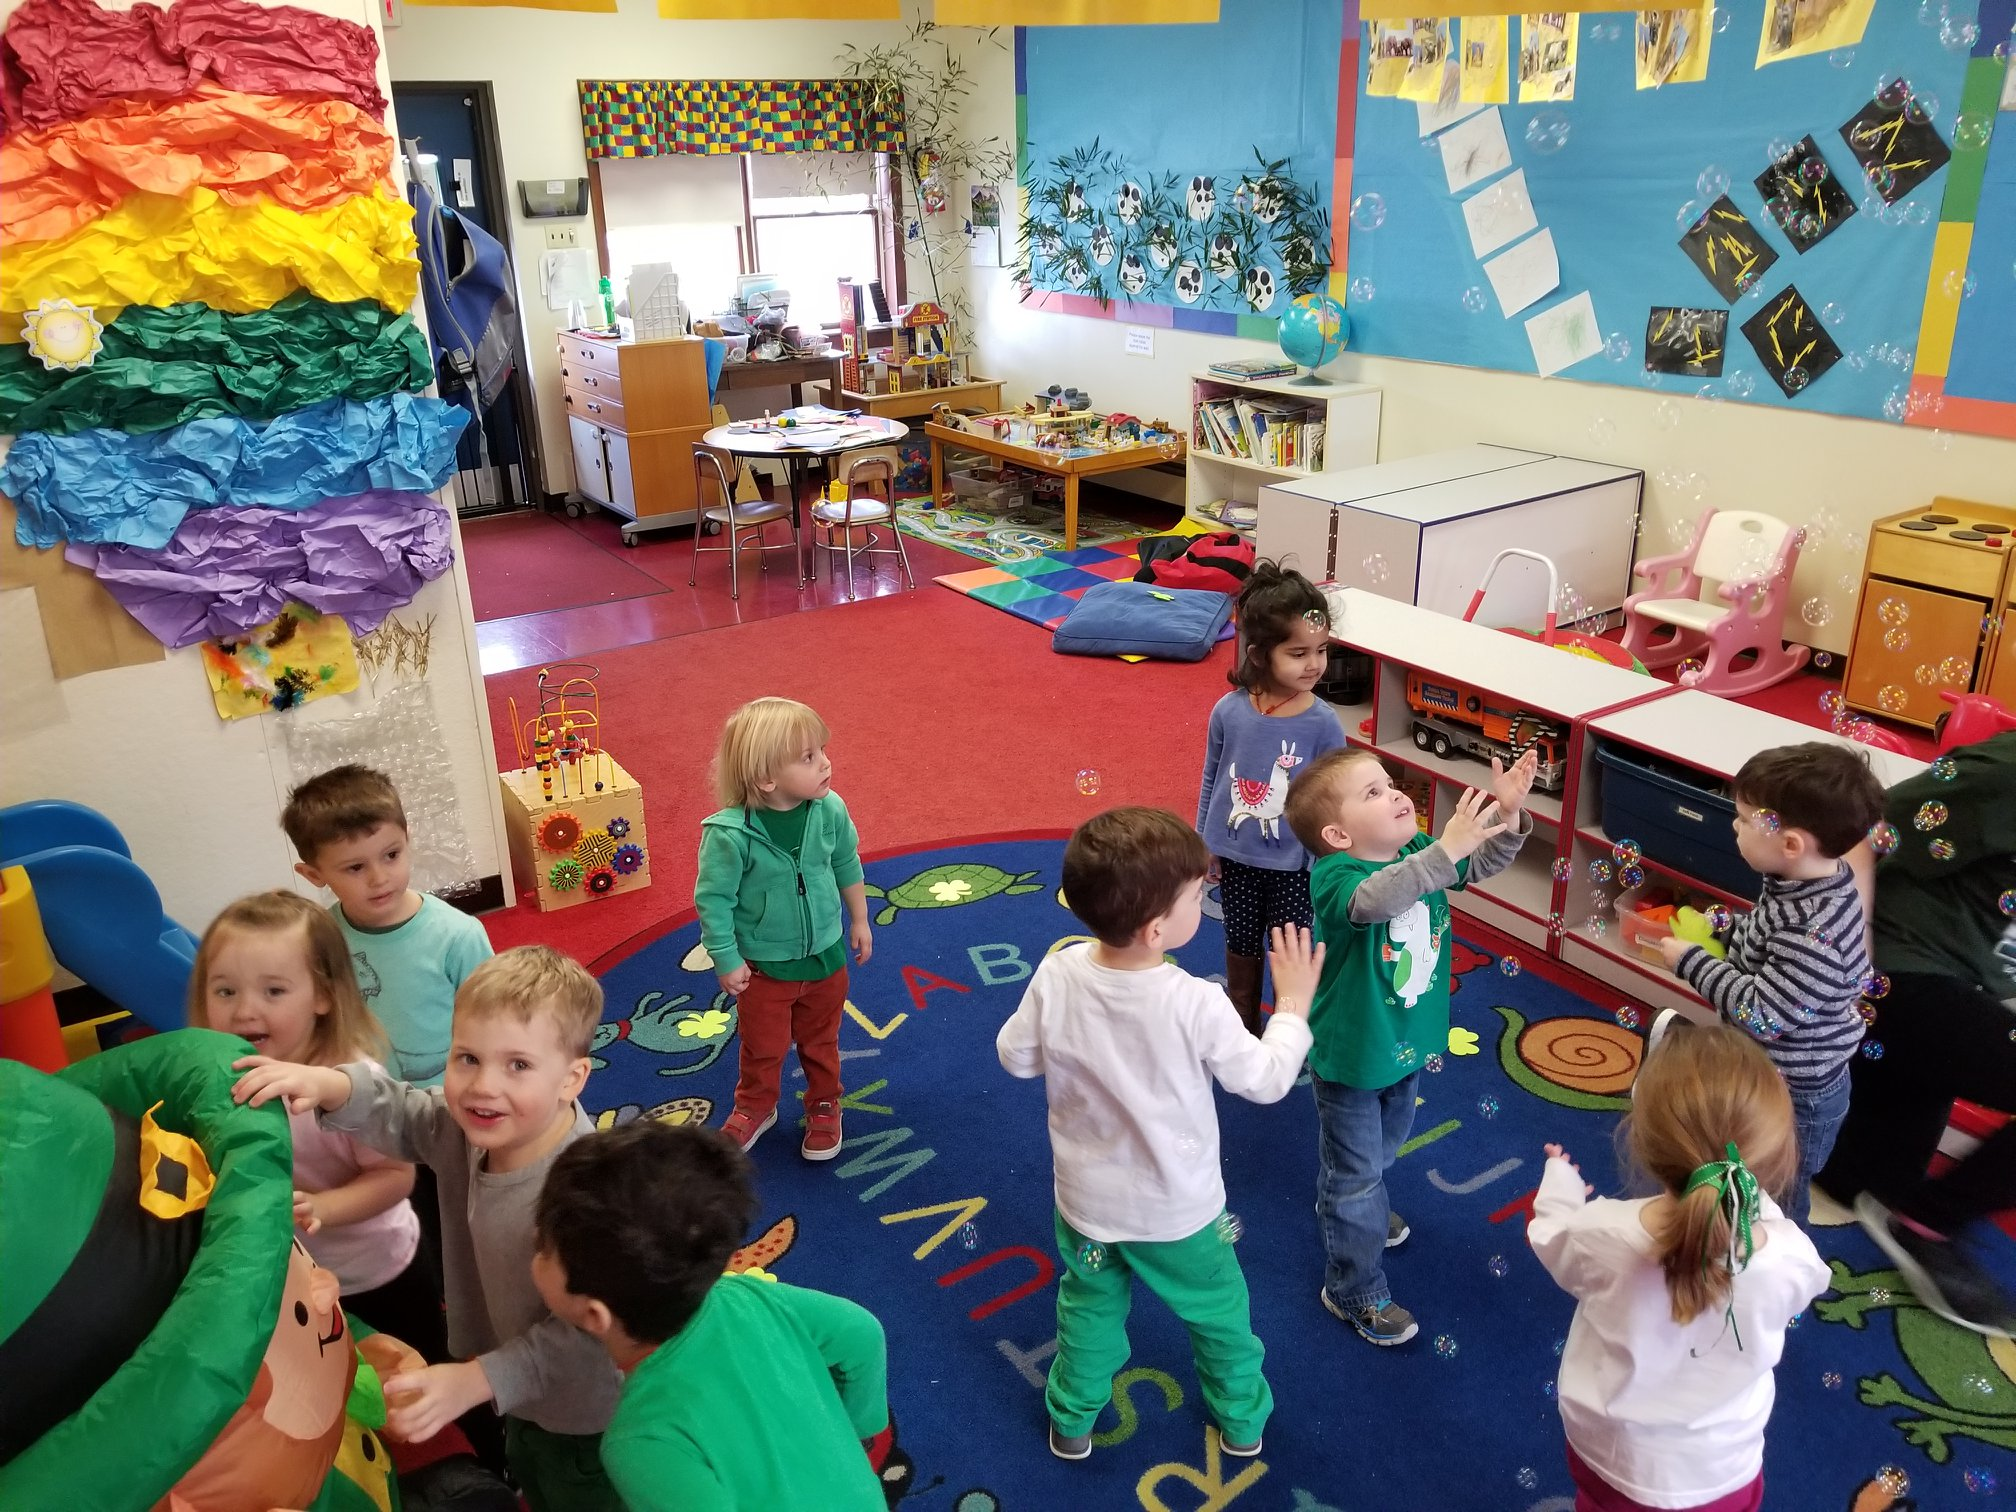 Kids playing in a classroom.